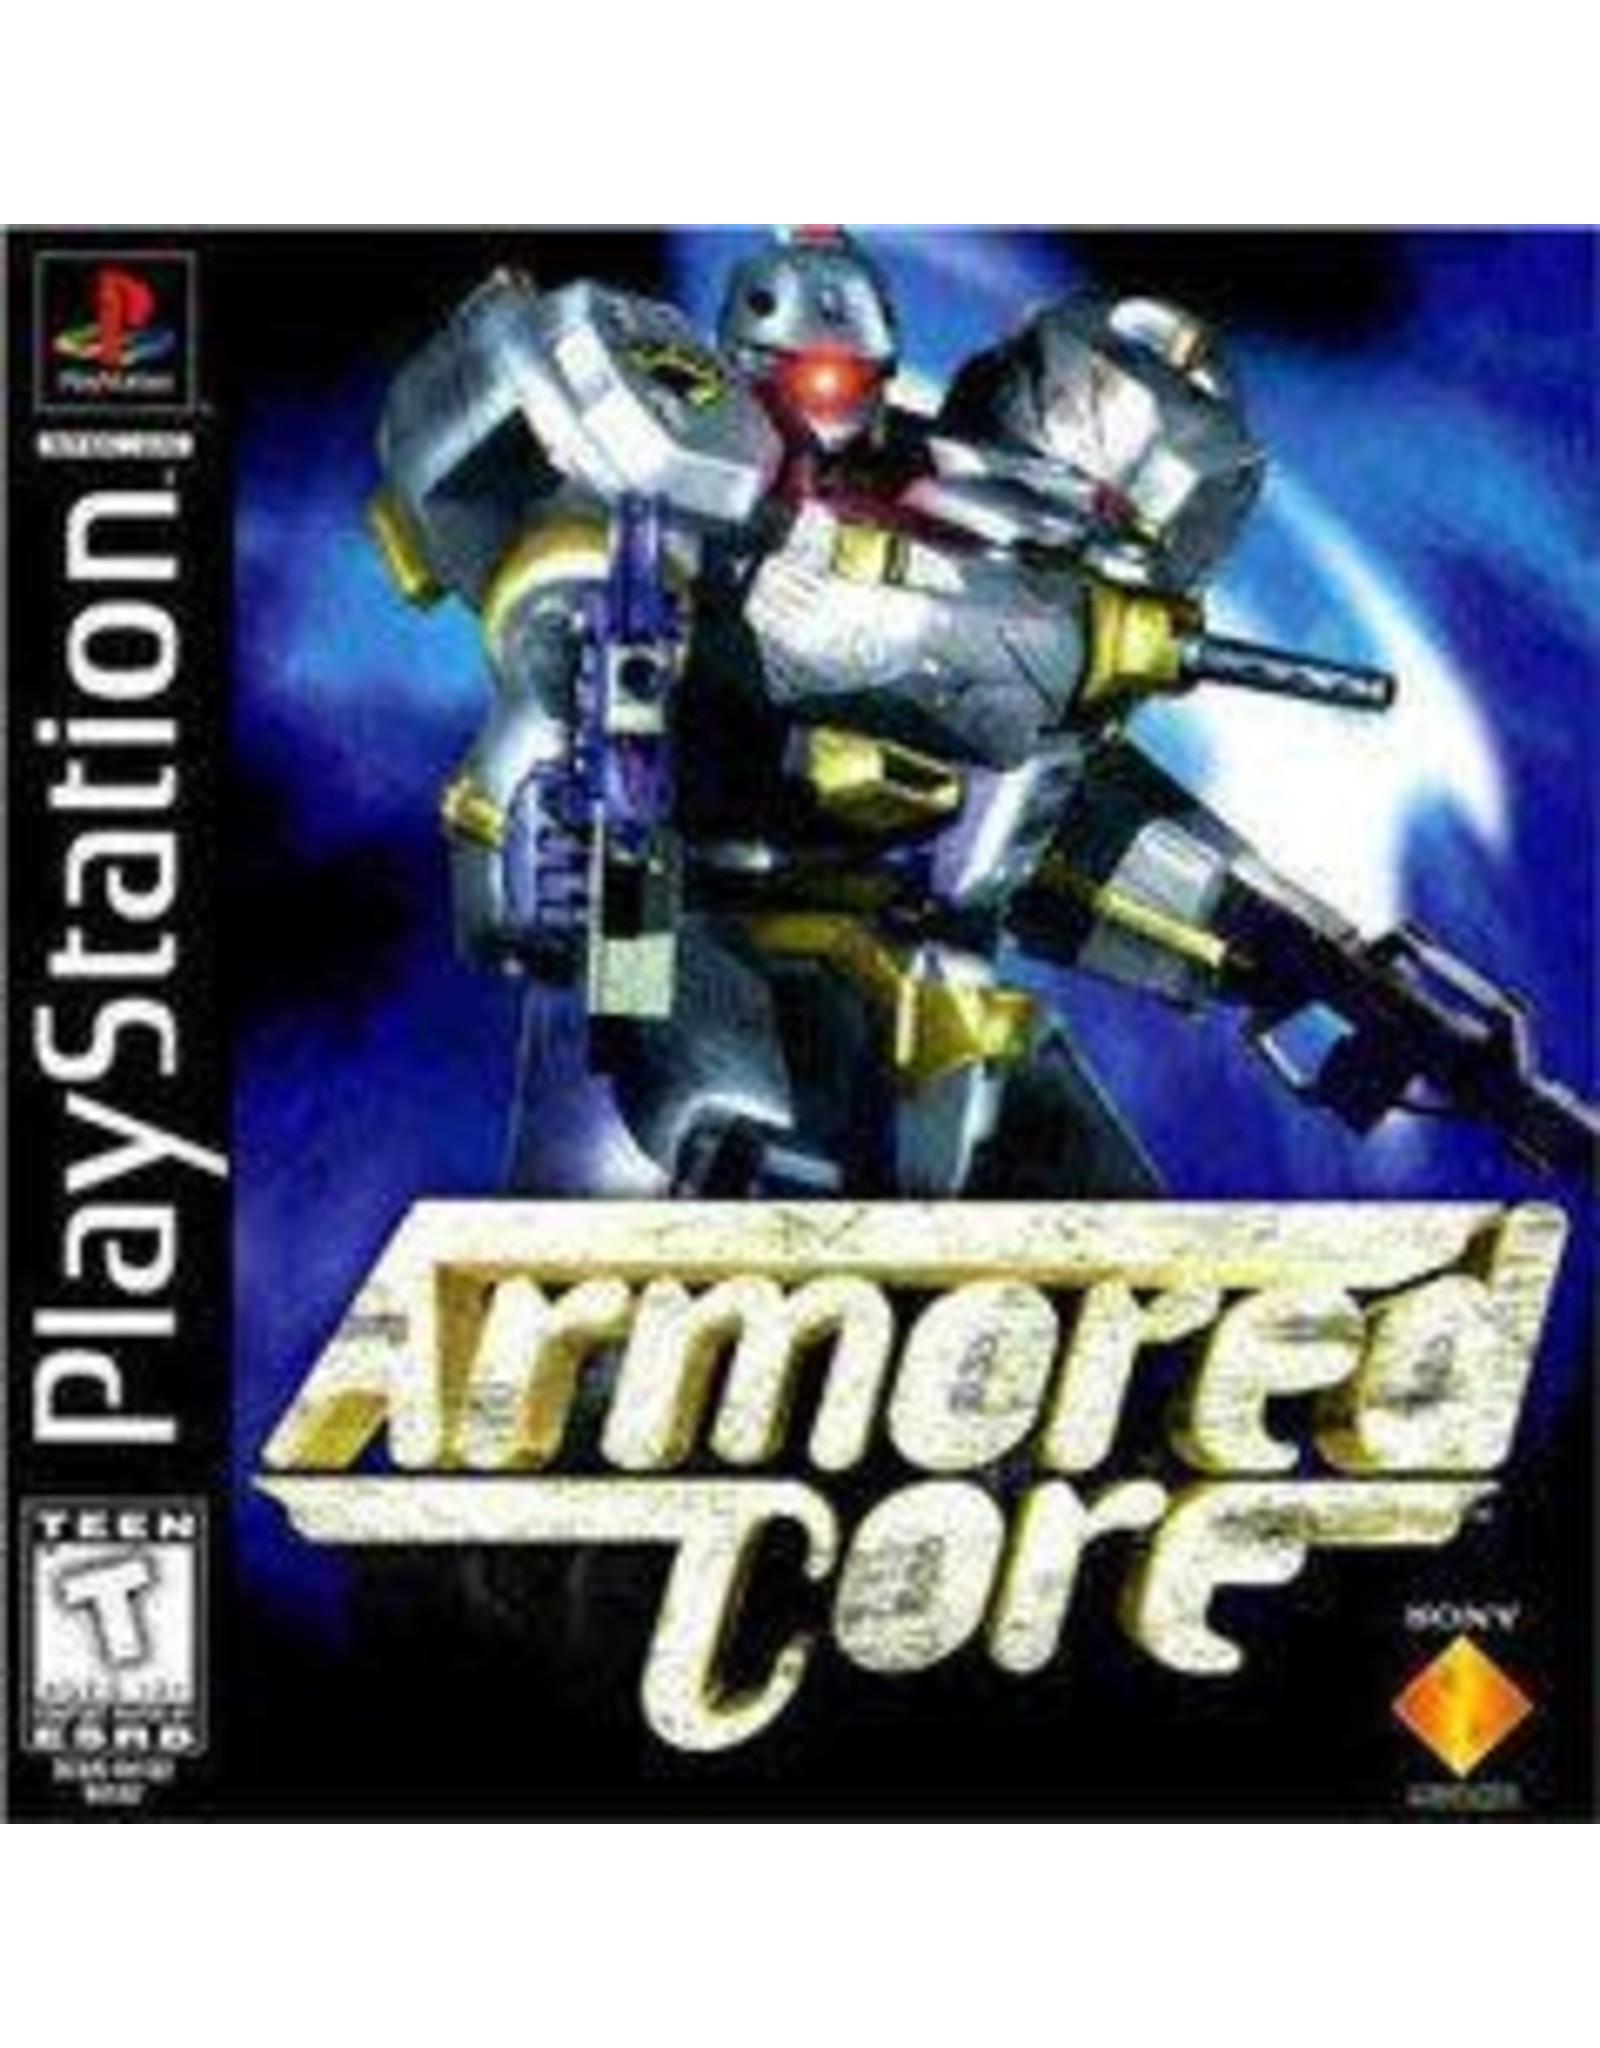 Playstation Armored Core (CiB)